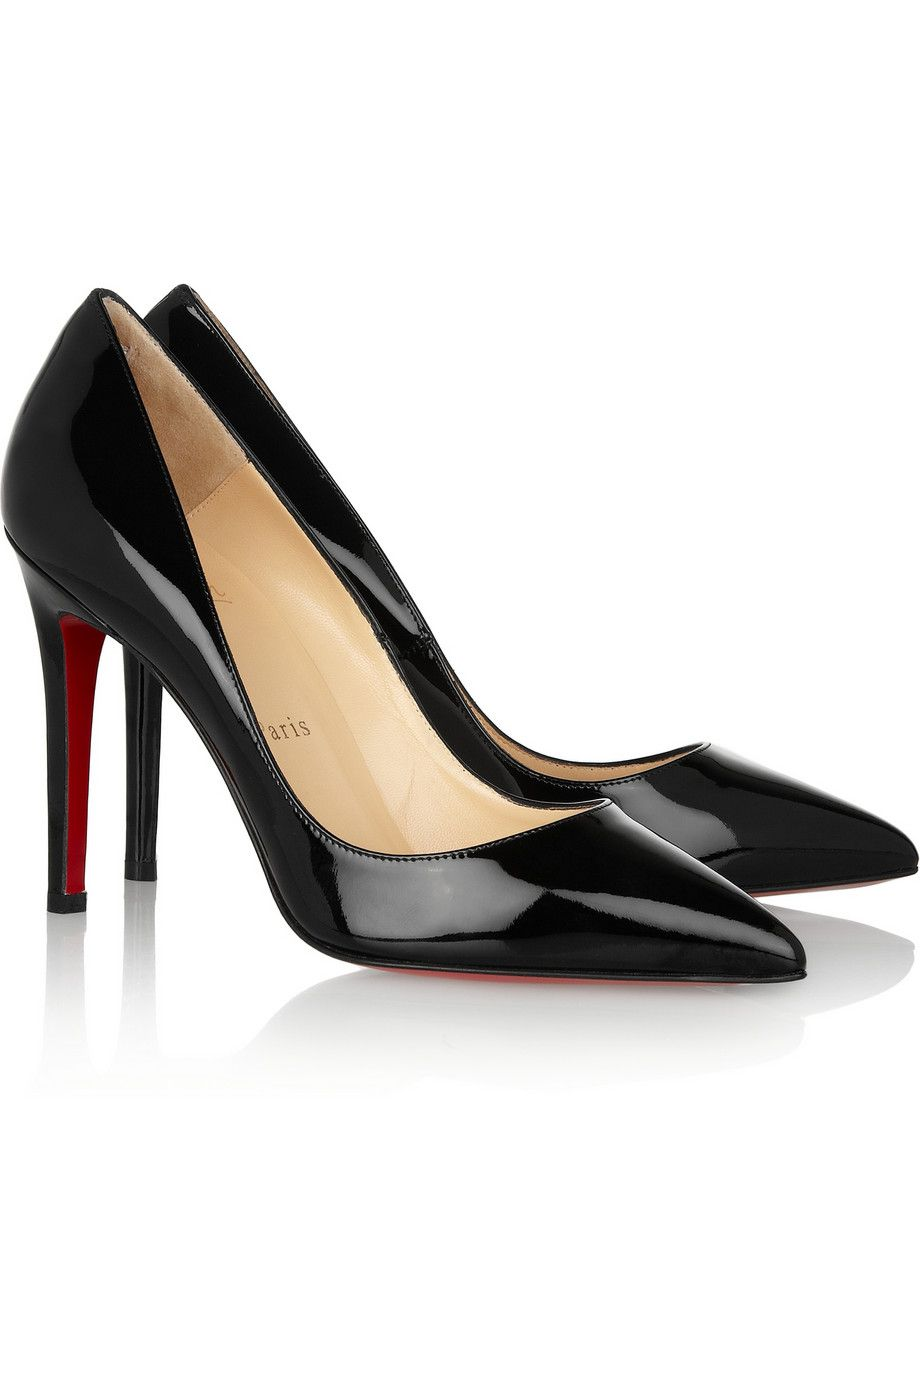 separation shoes 8fc03 69d28 Christian Louboutin | The Pigalle 100 patent-leather pumps ...